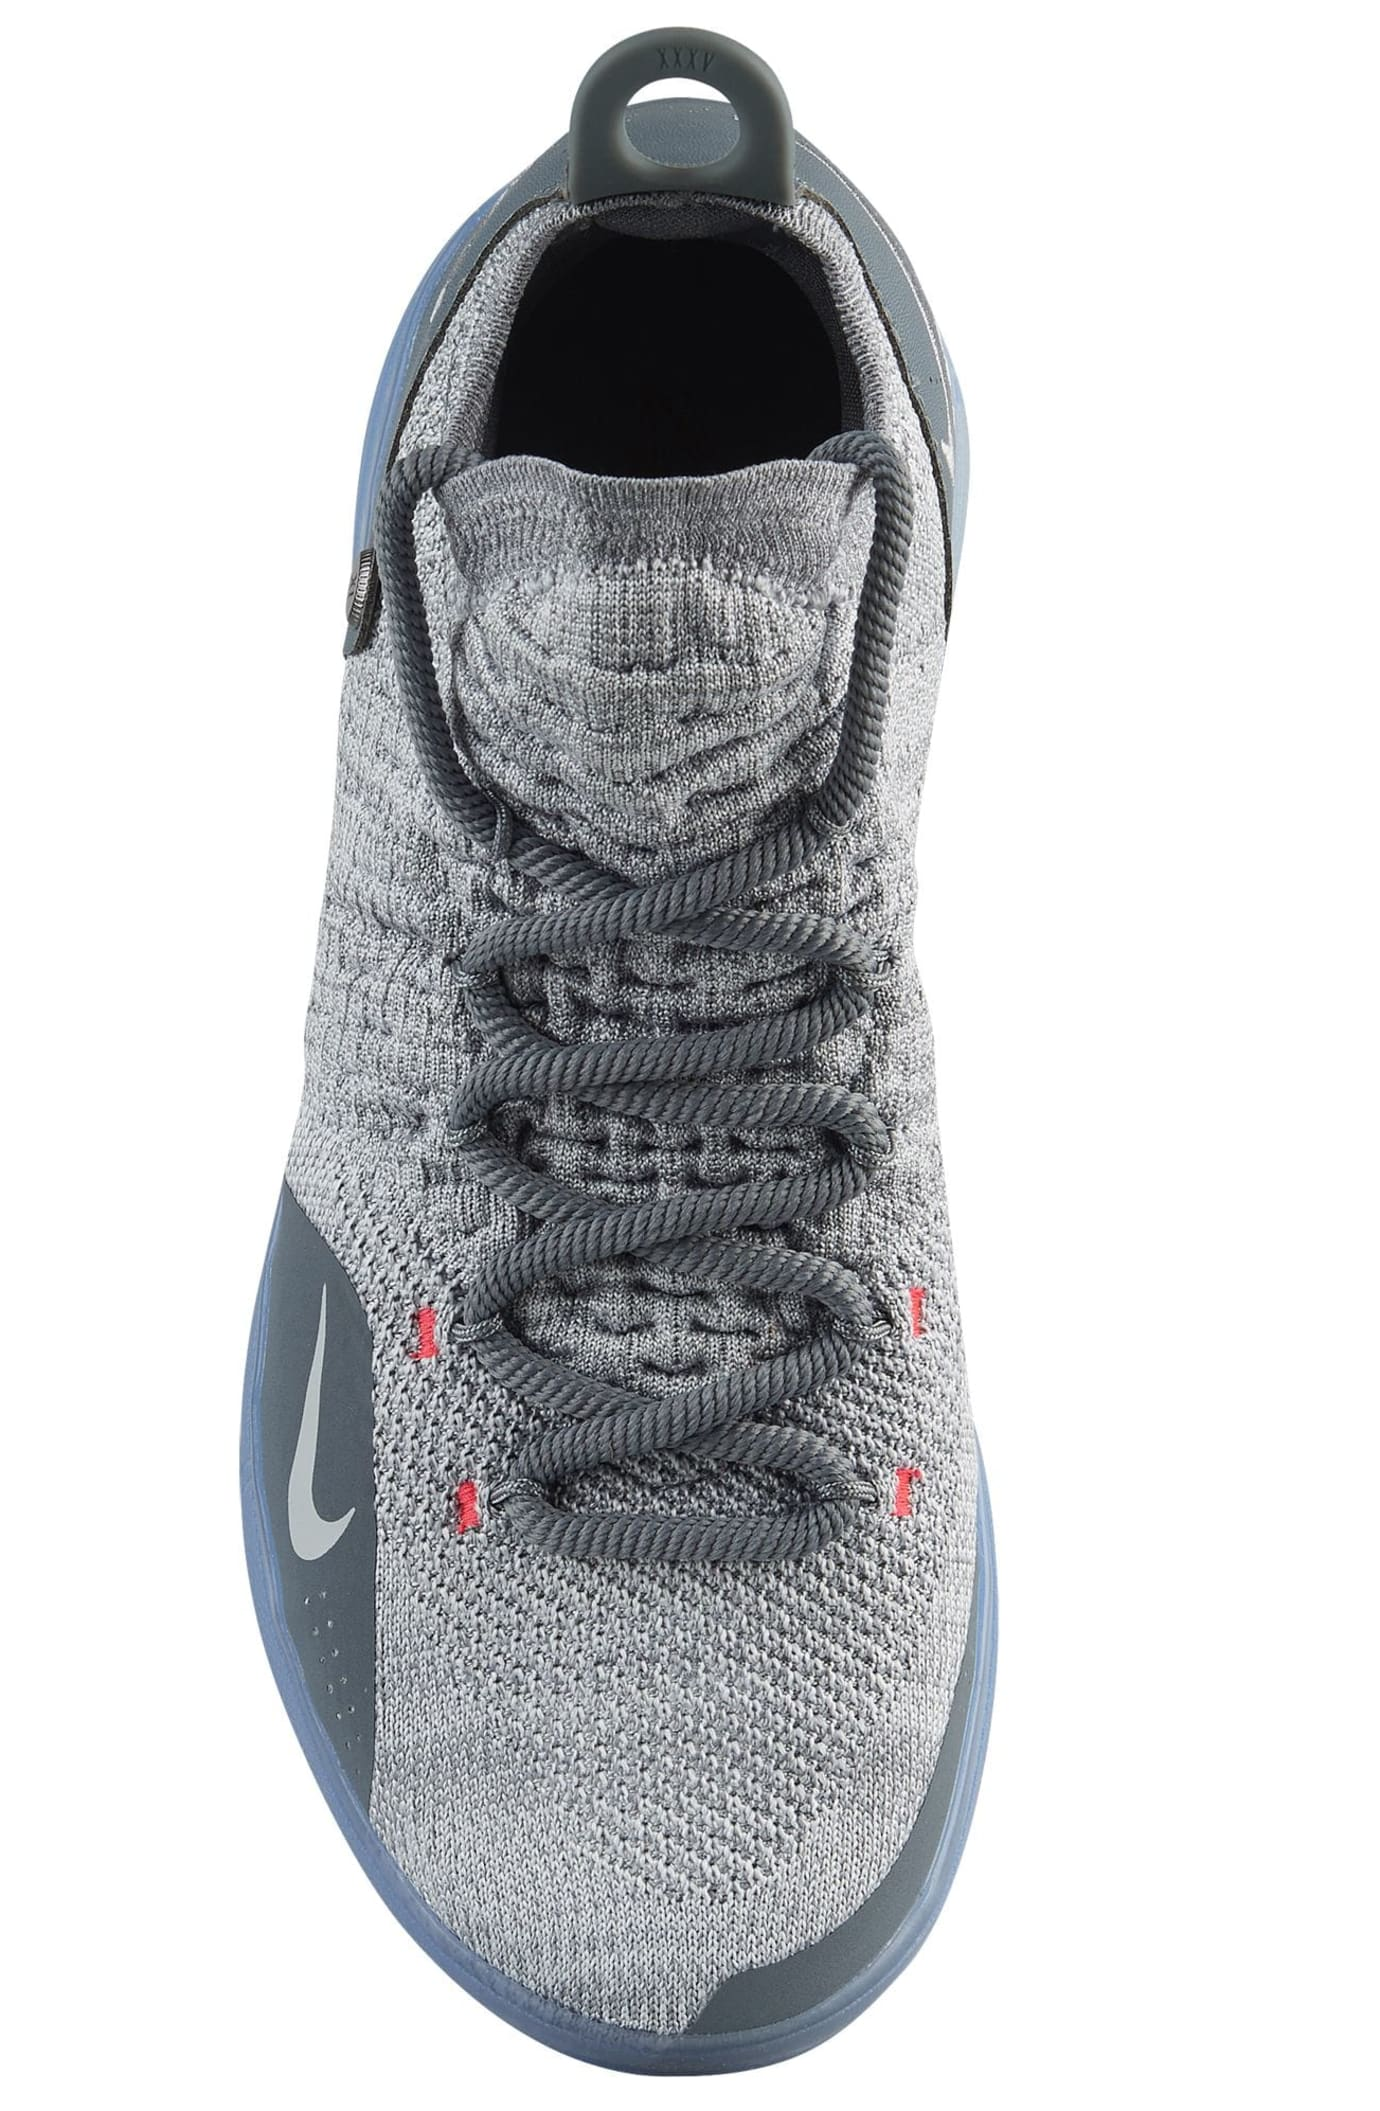 6cf50b39f Image via Footlocker nike-kd-11-cool-grey-ao2604-002-top